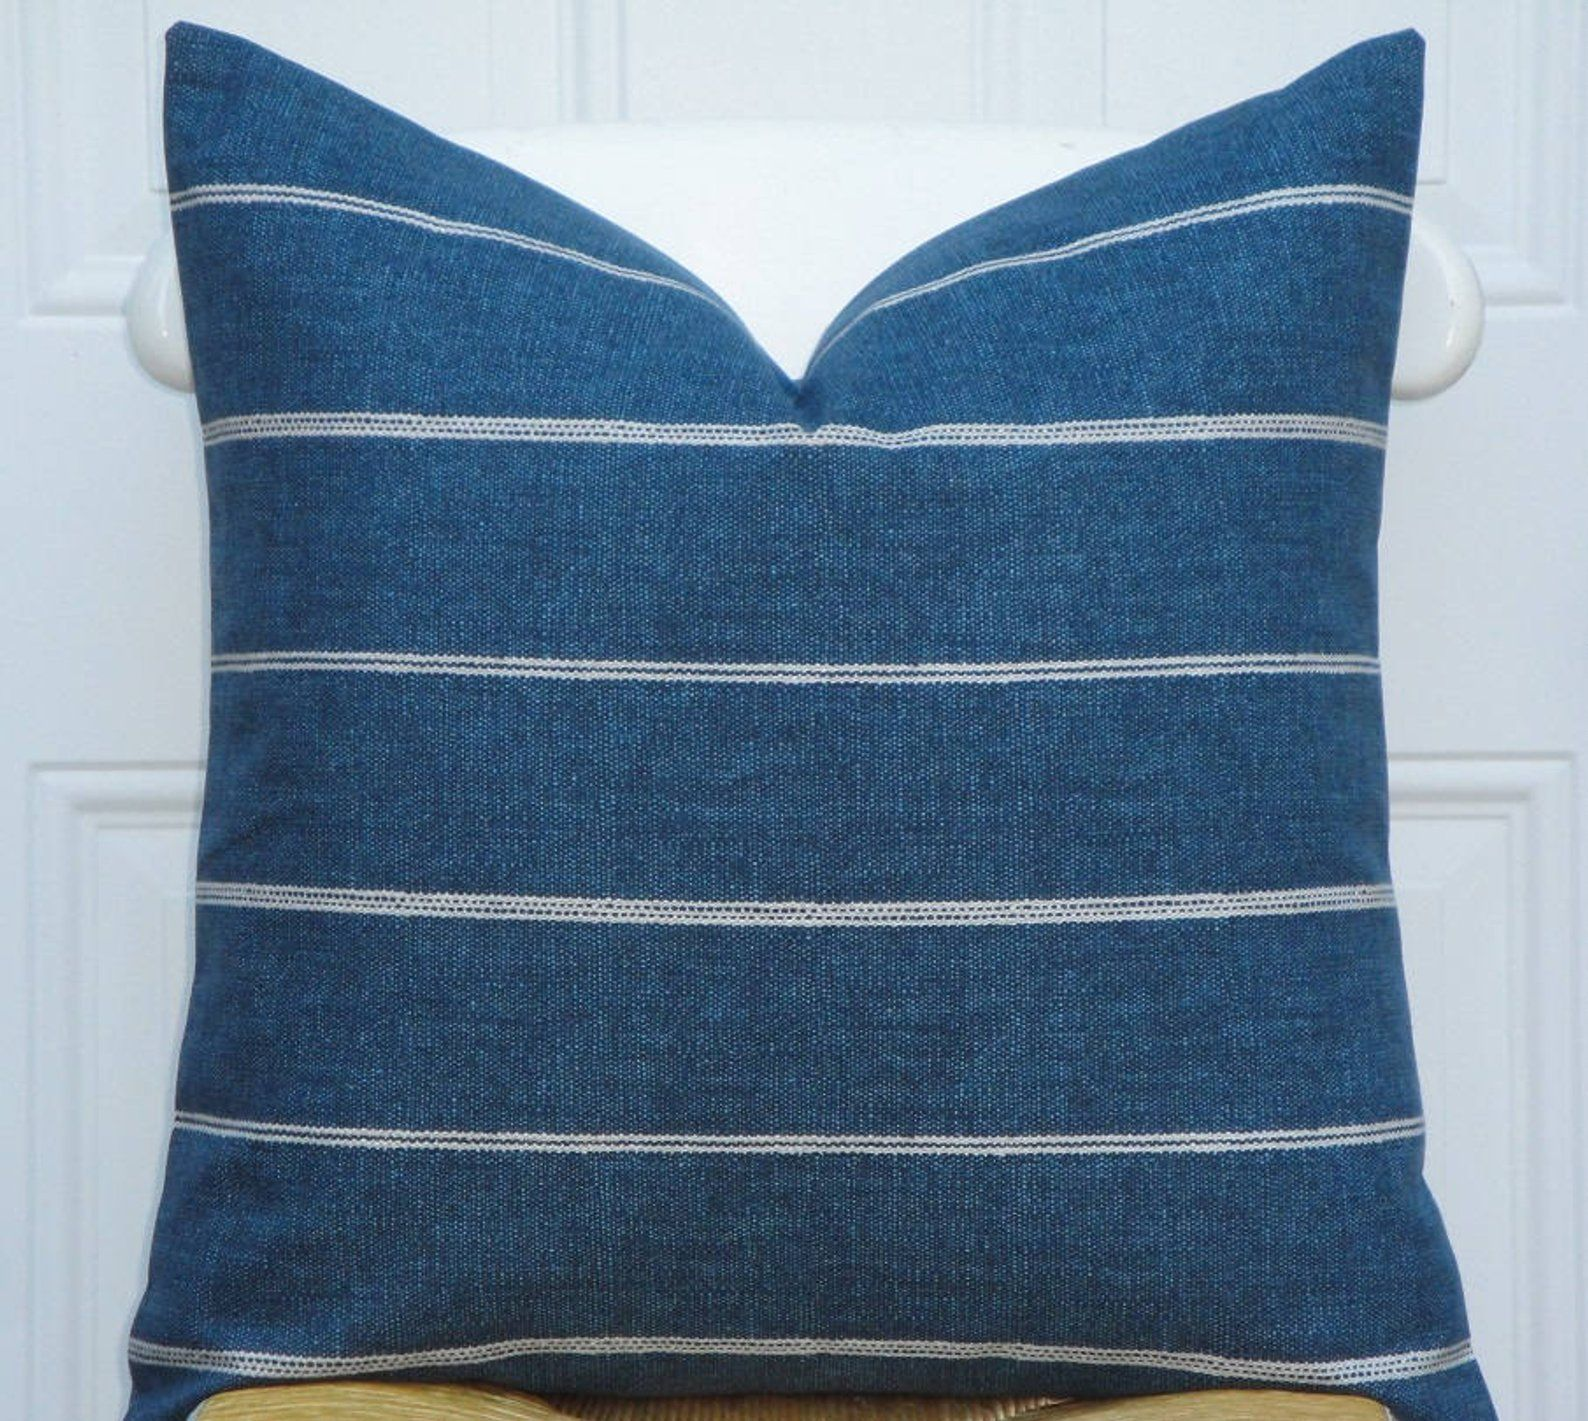 Astonishing Double Sided Decorative Pillow Cover Stripe In Blue Dailytribune Chair Design For Home Dailytribuneorg